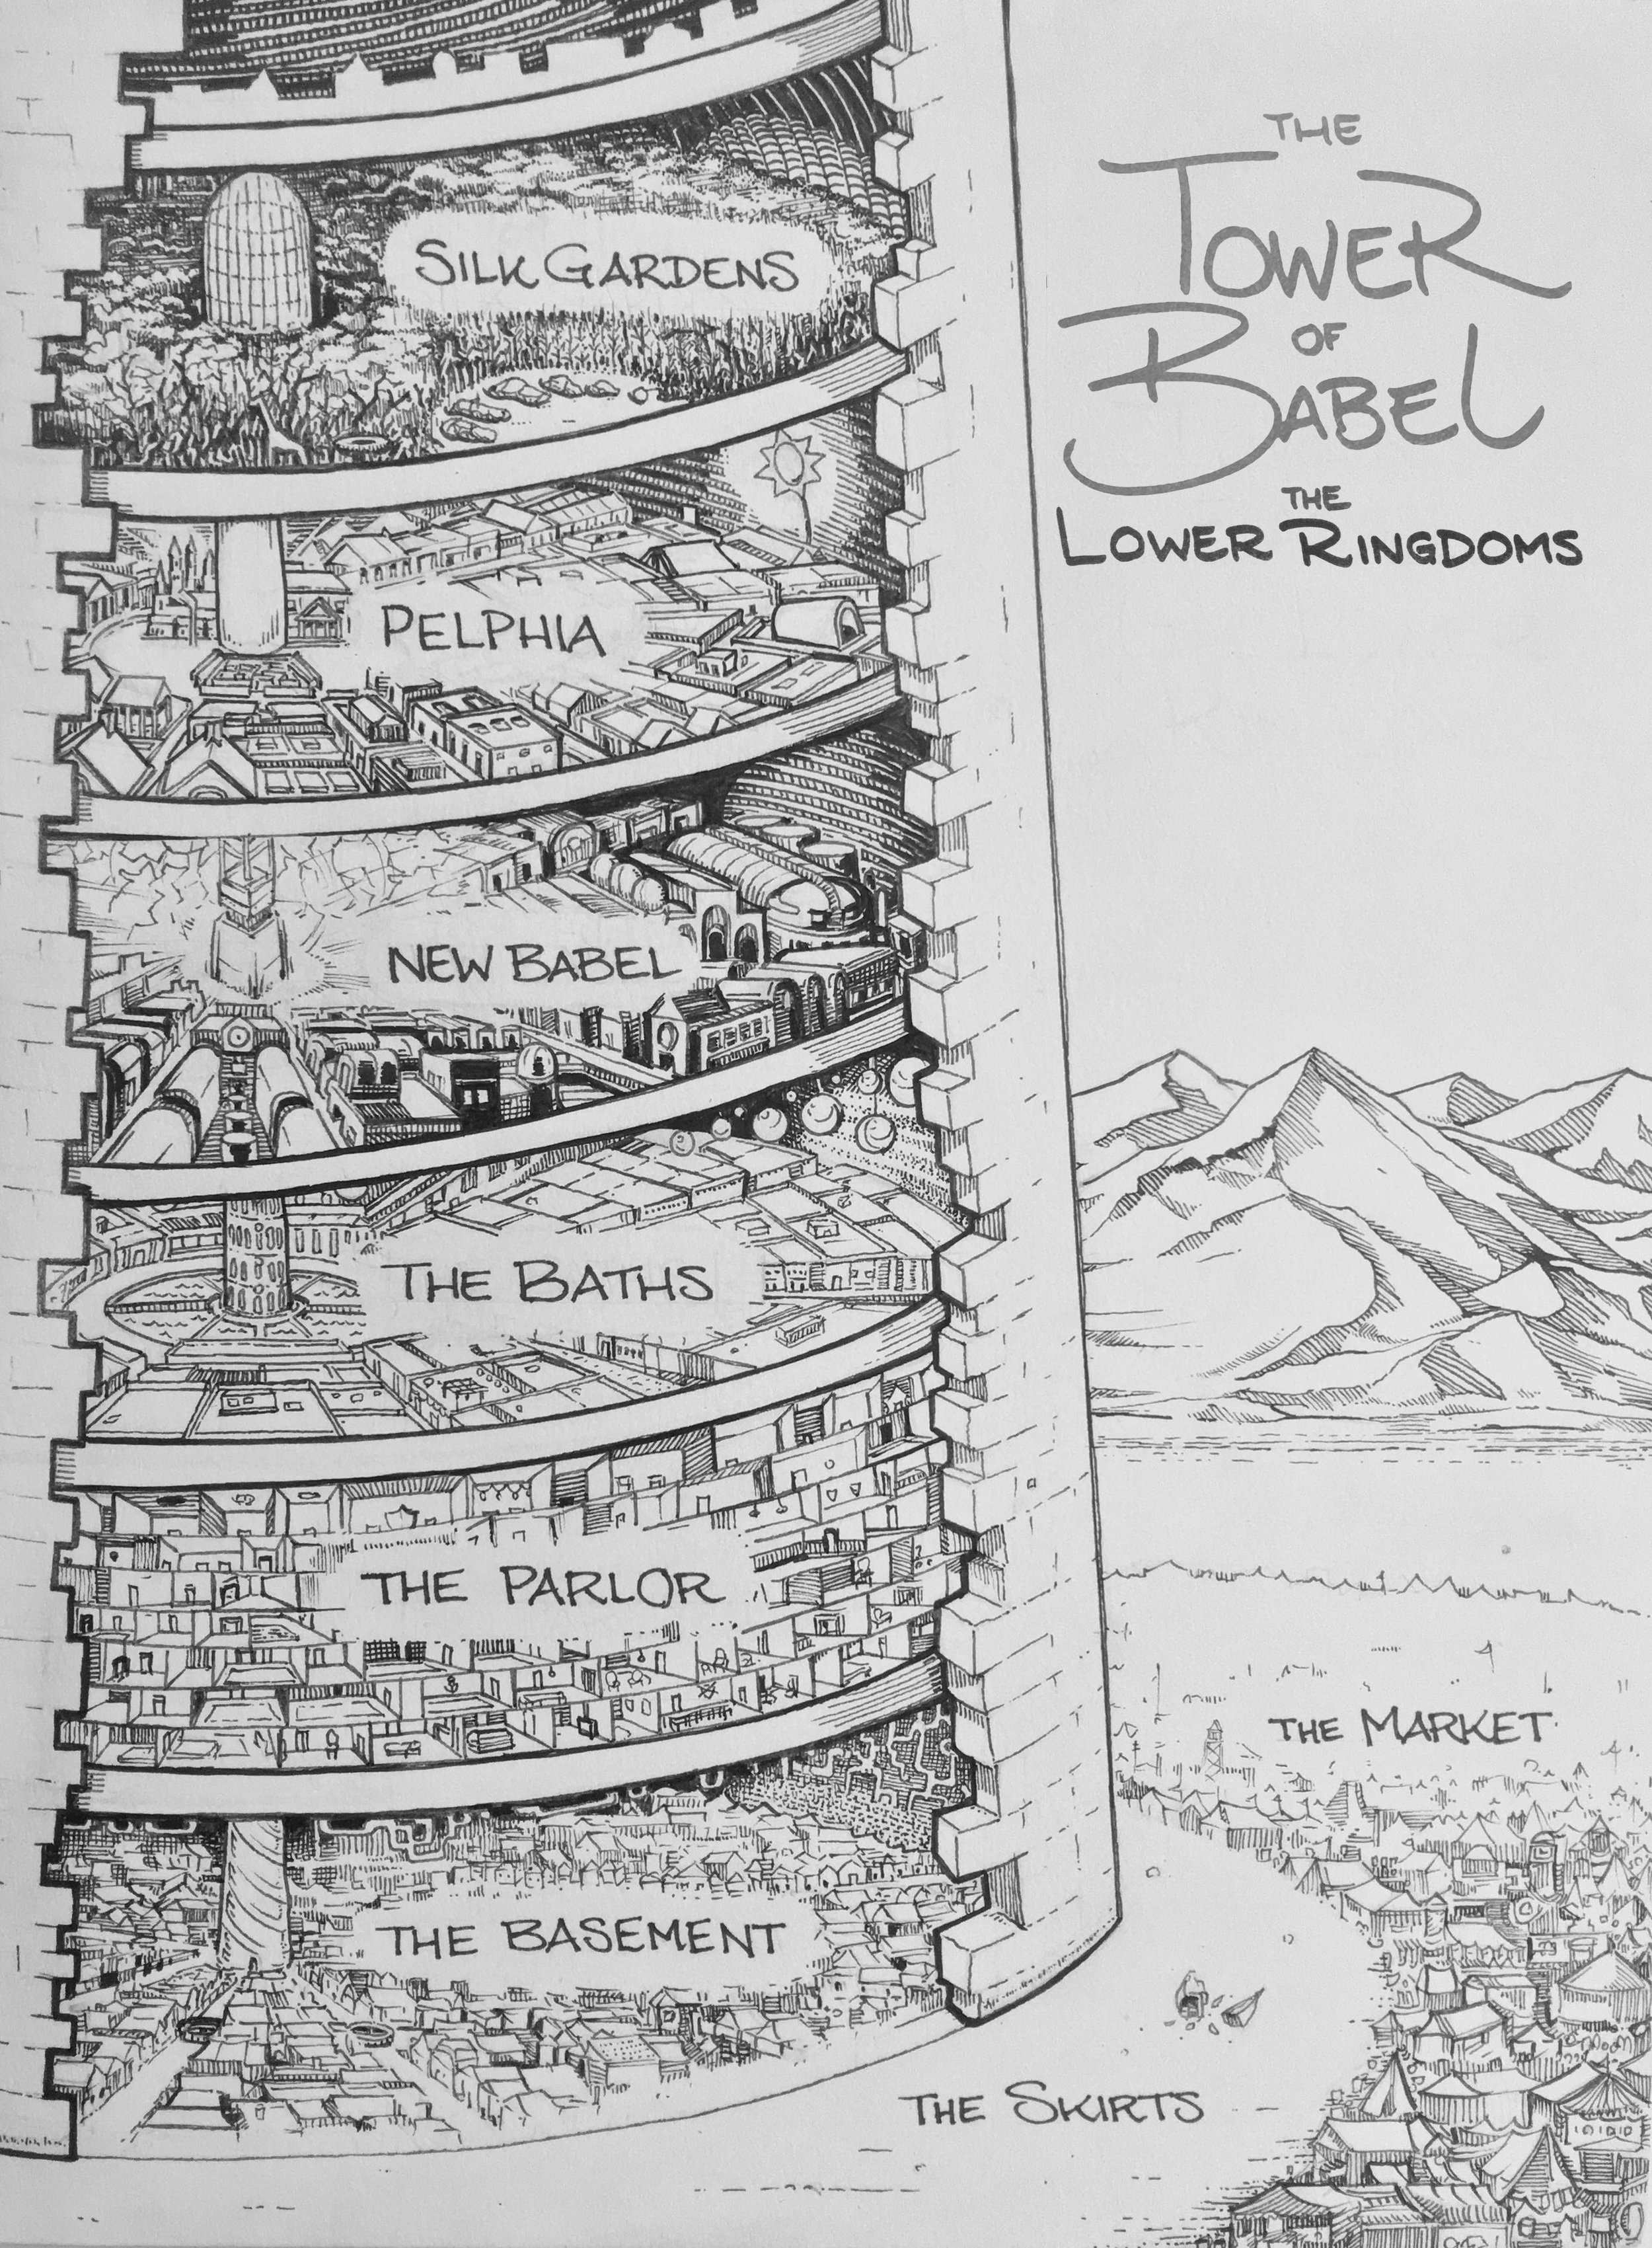 The Tower of Babel, Lower Ringdoms, Hardcover Edition (Ink, 2016)